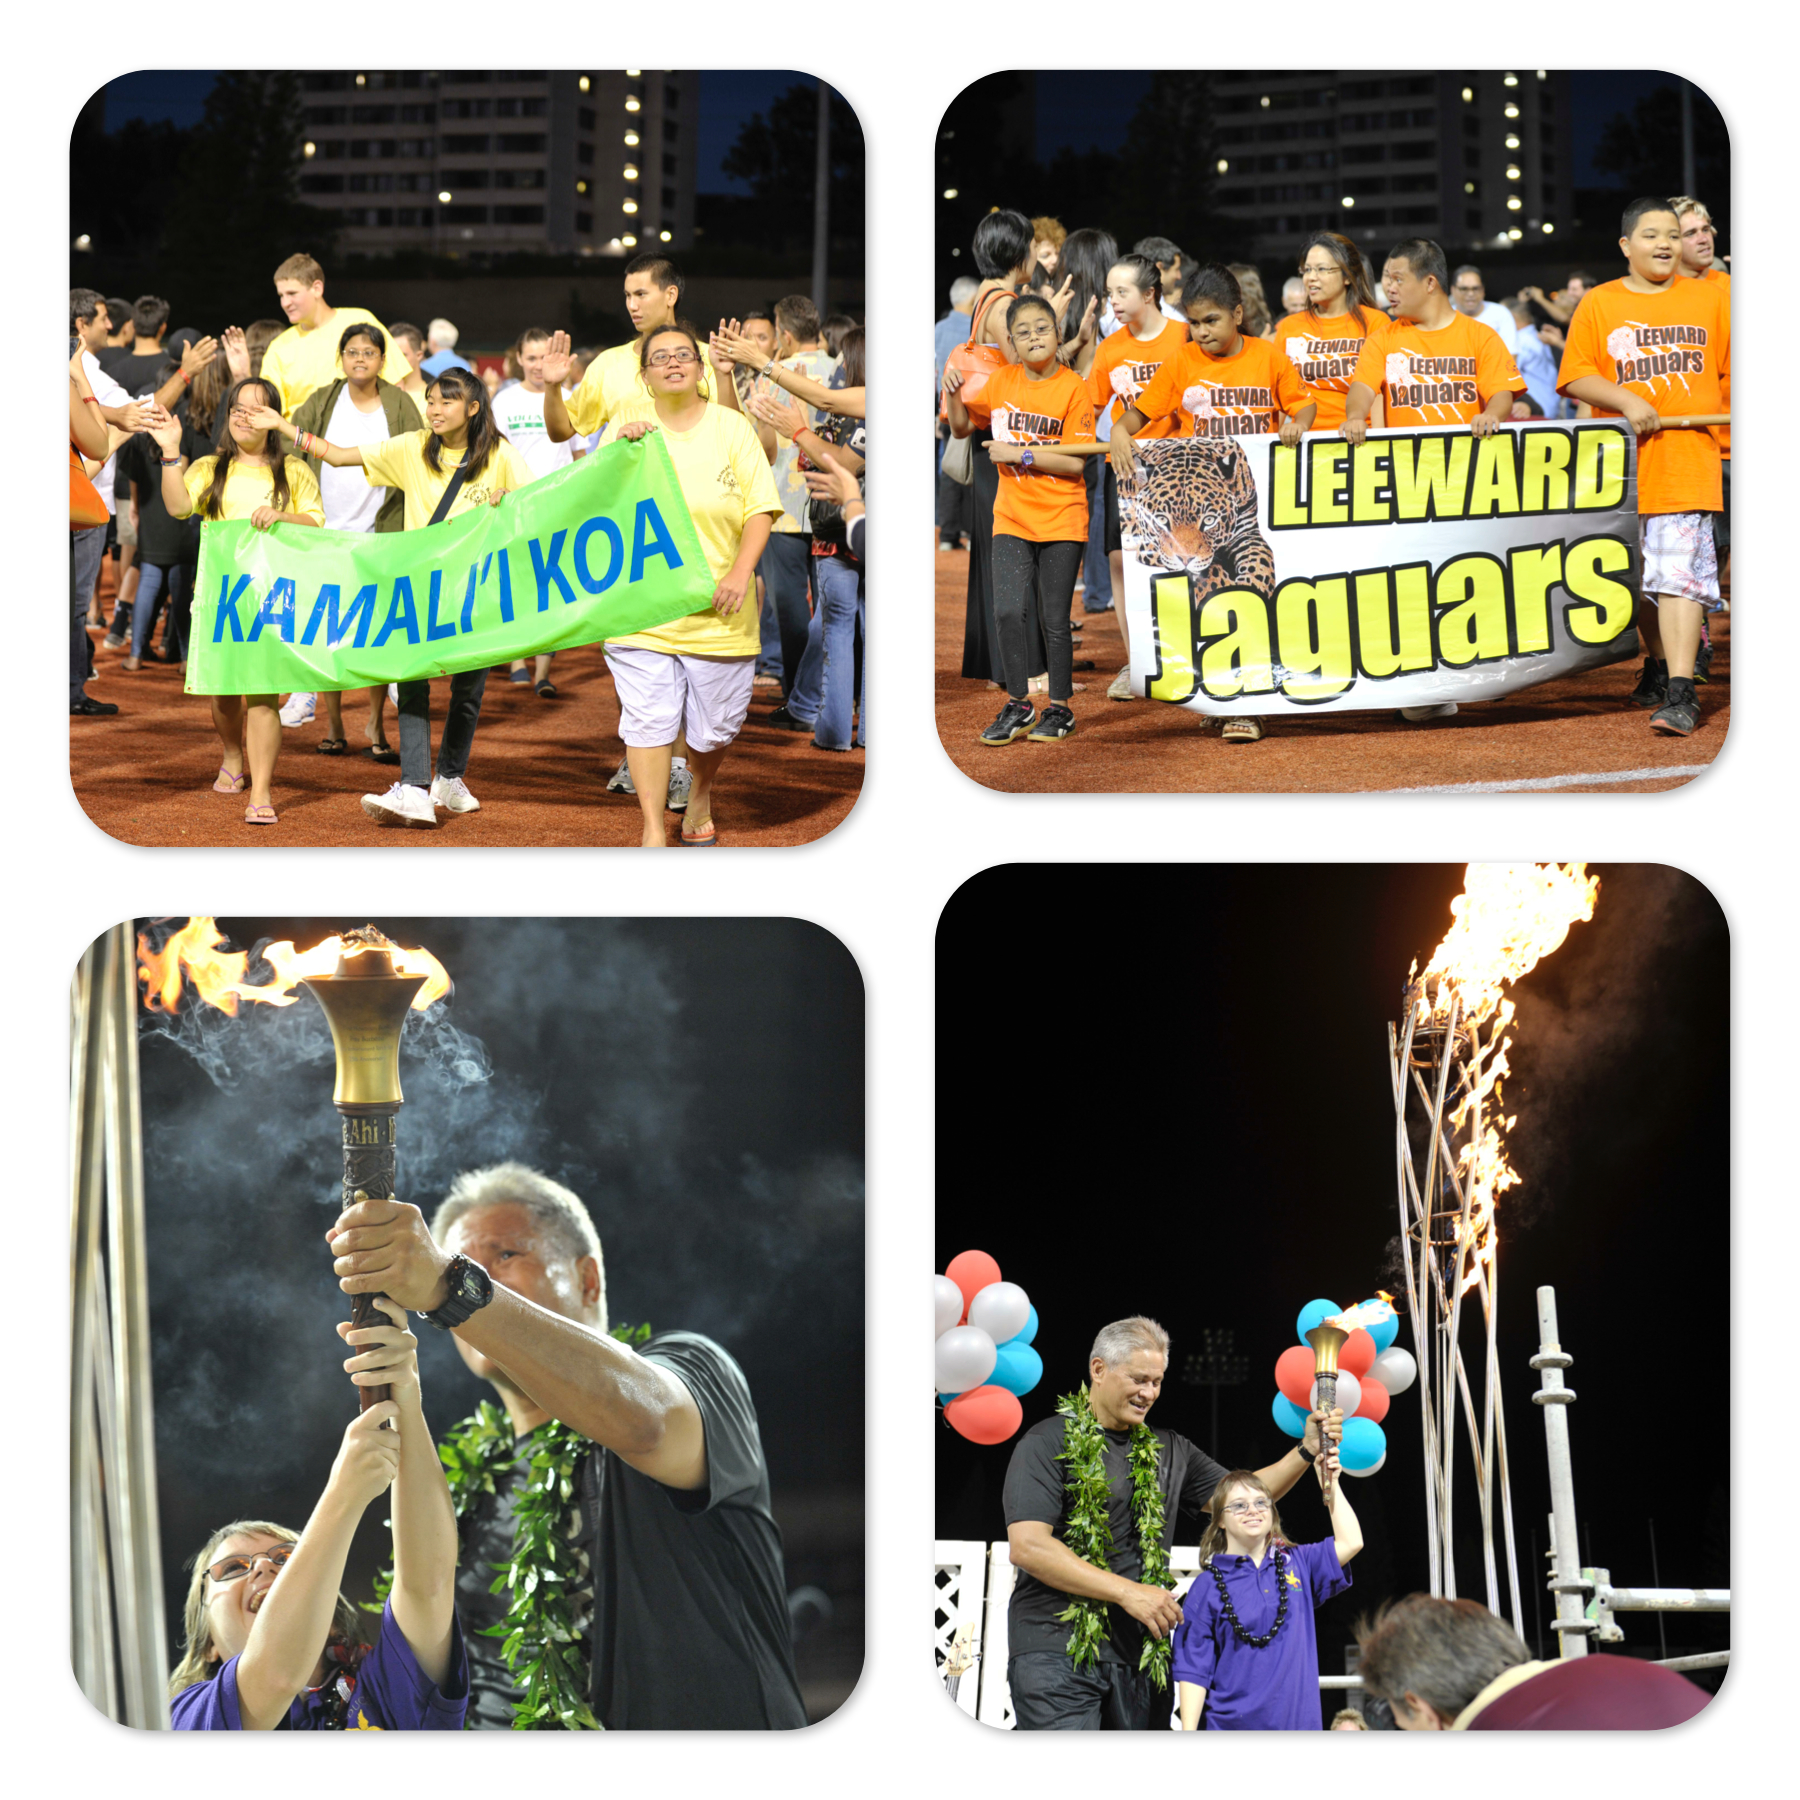 46th Annual Special Olympics State Summer Games' Opening Ceremonies Recorded Live on May 30, 2014 (@sohawaii)